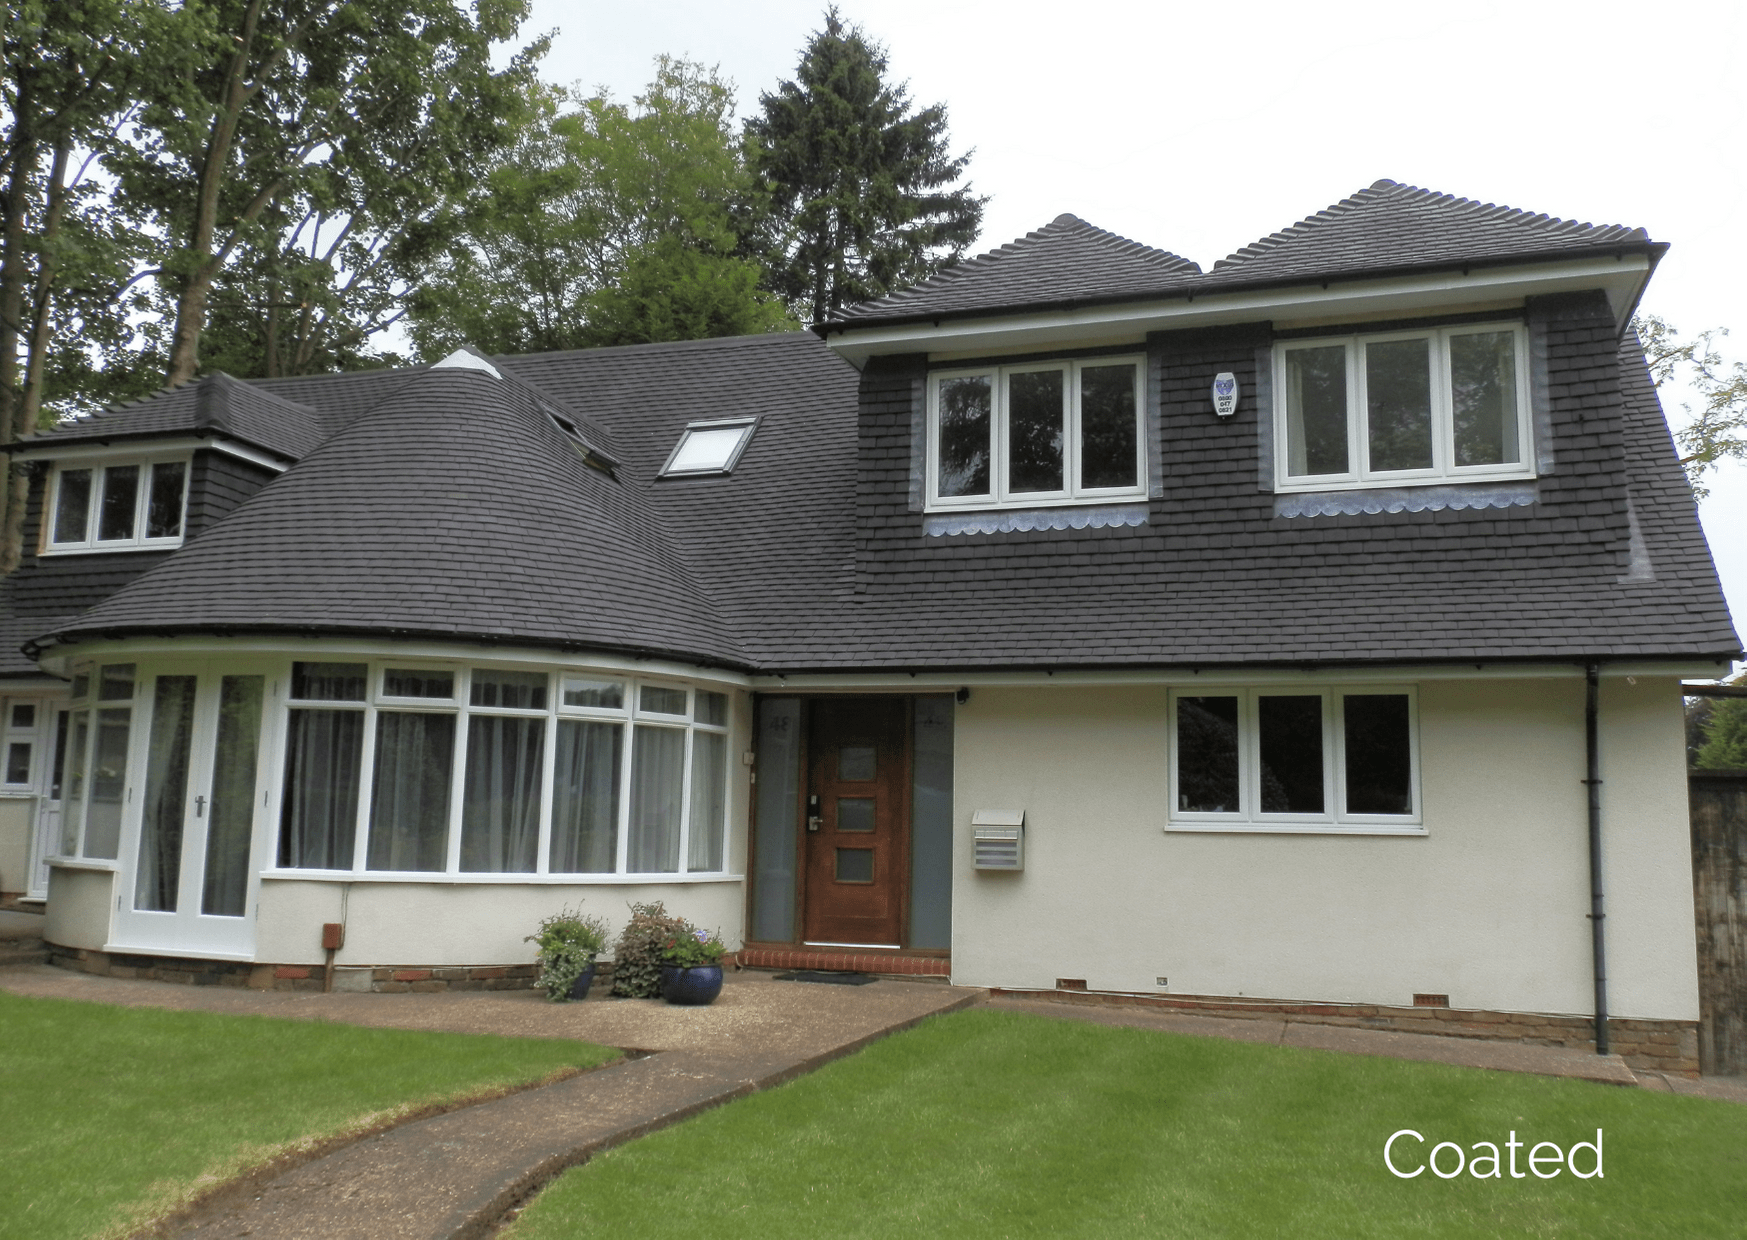 A house that has had the roof treated with the waterproof roof paint